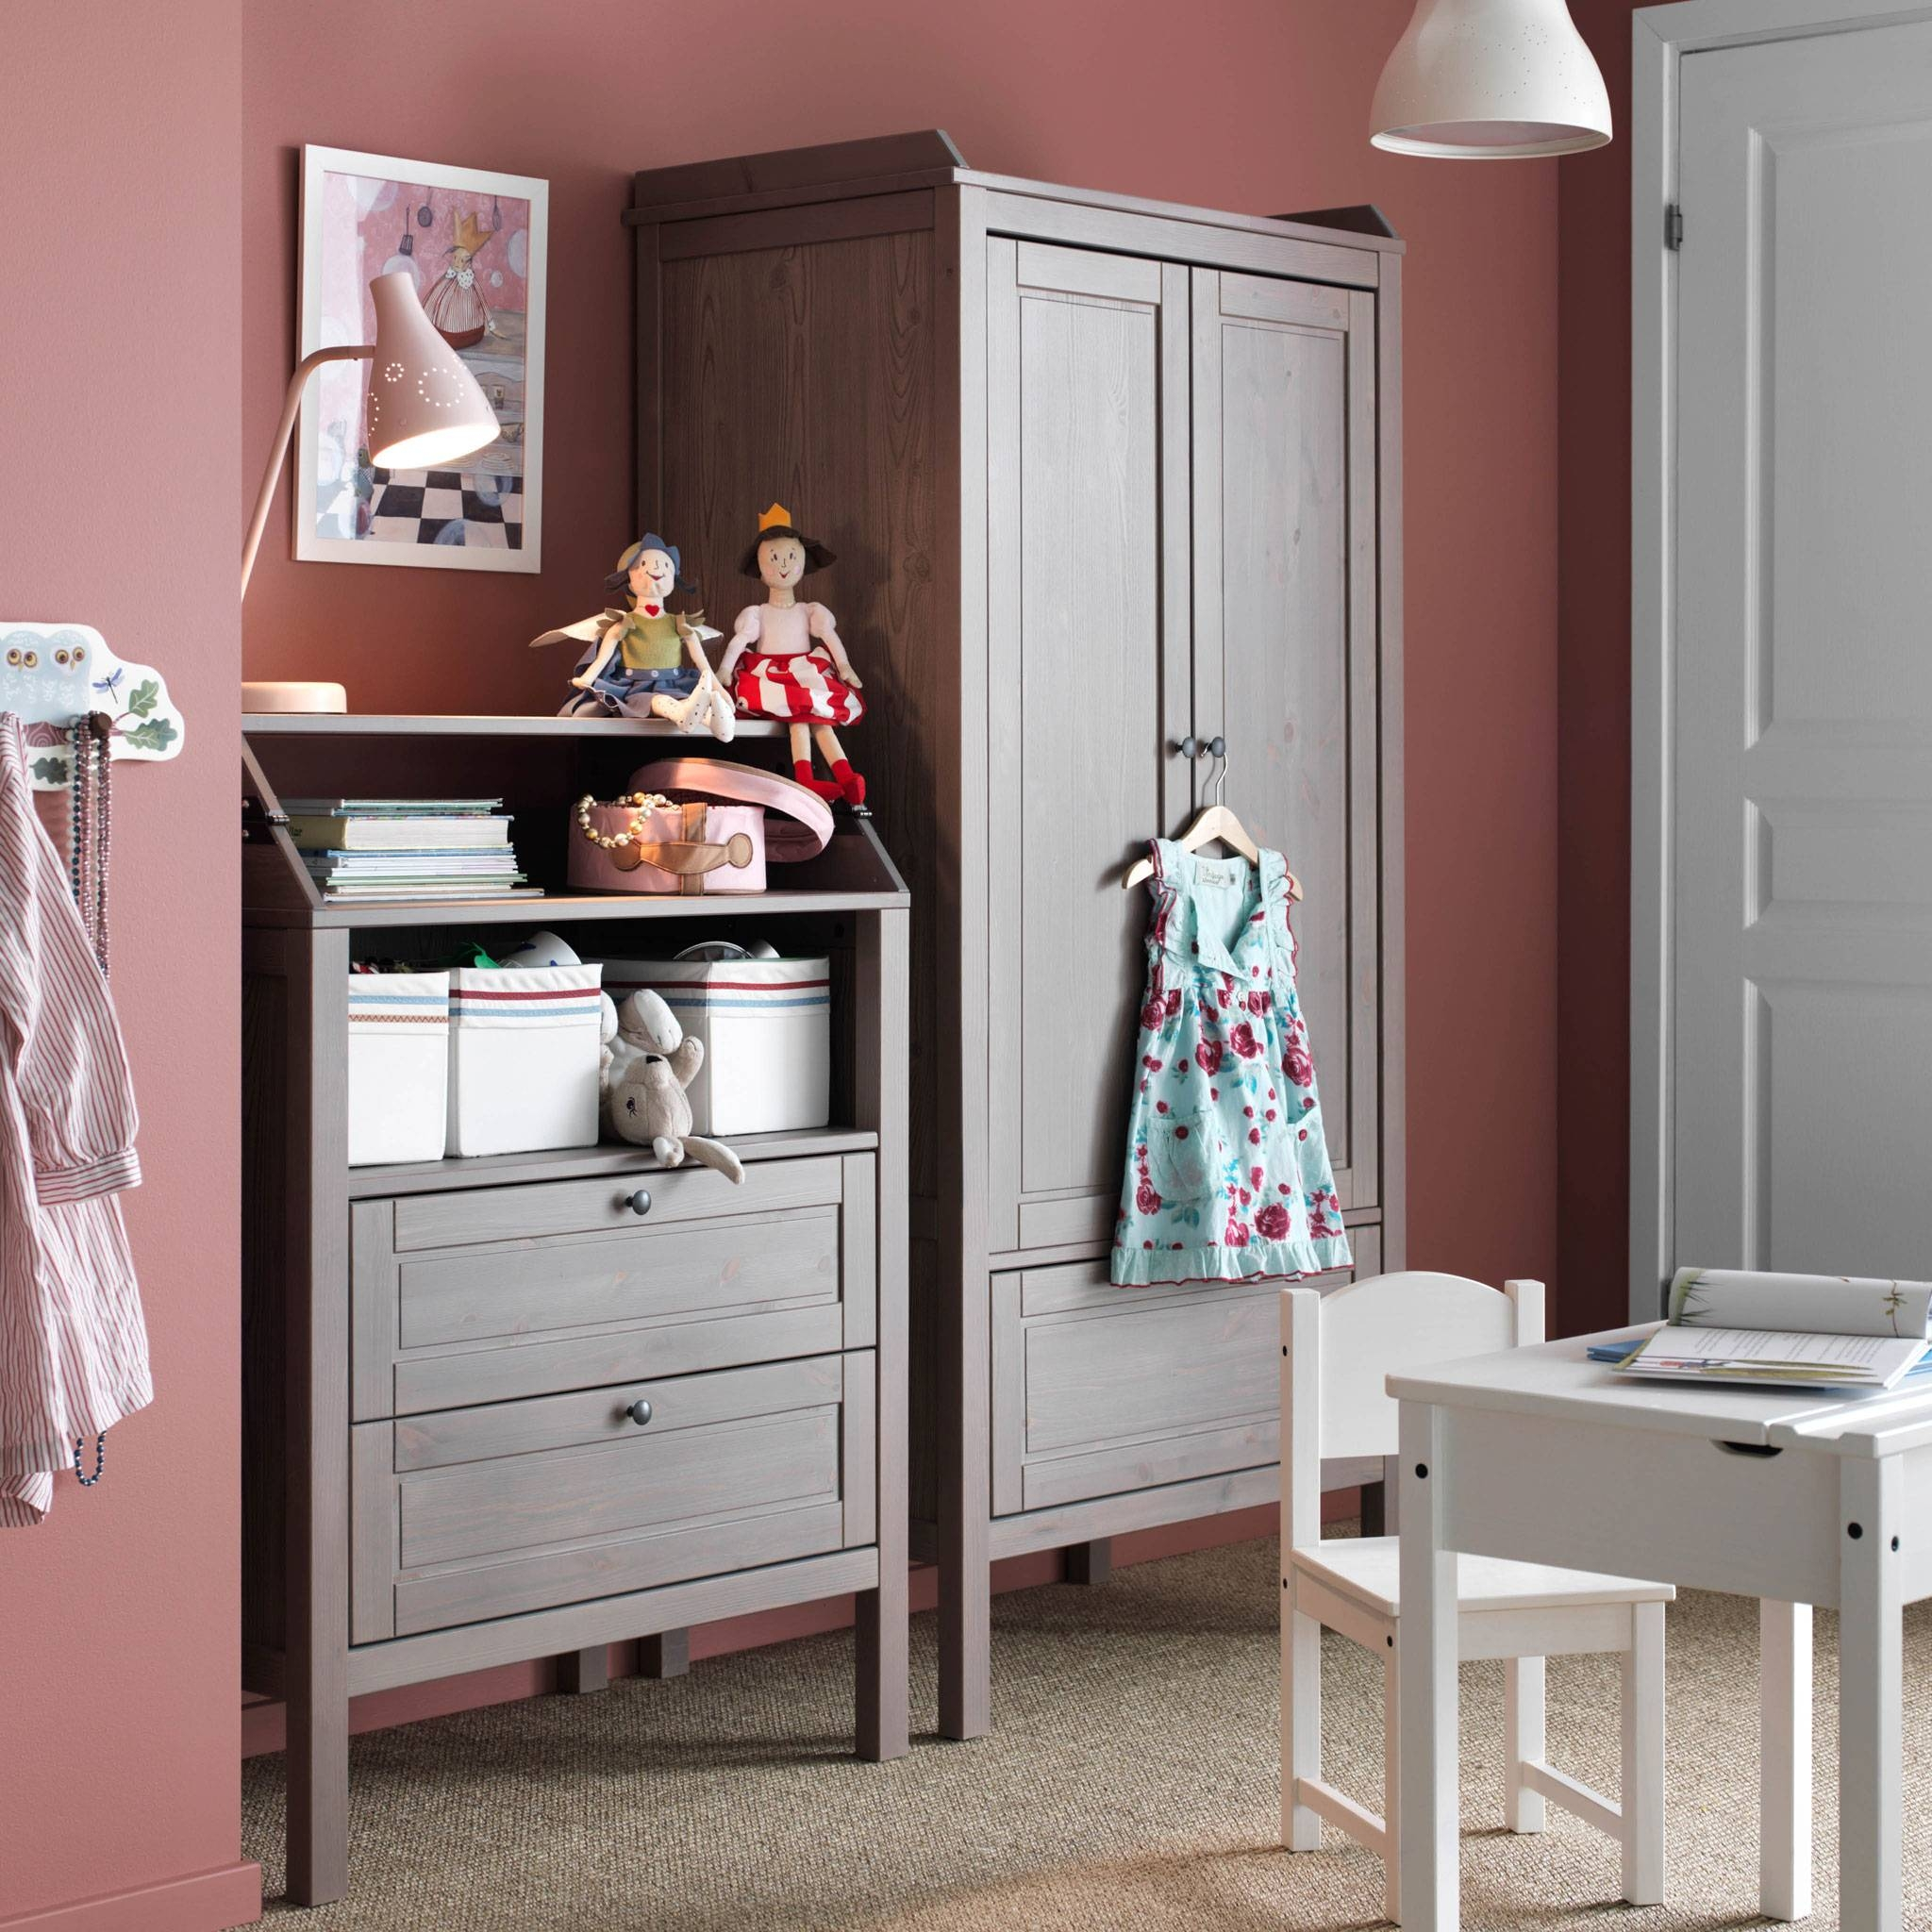 Children's Furniture & Ideas | Ikea pertaining to Kids Wardrobes (Image 6 of 15)